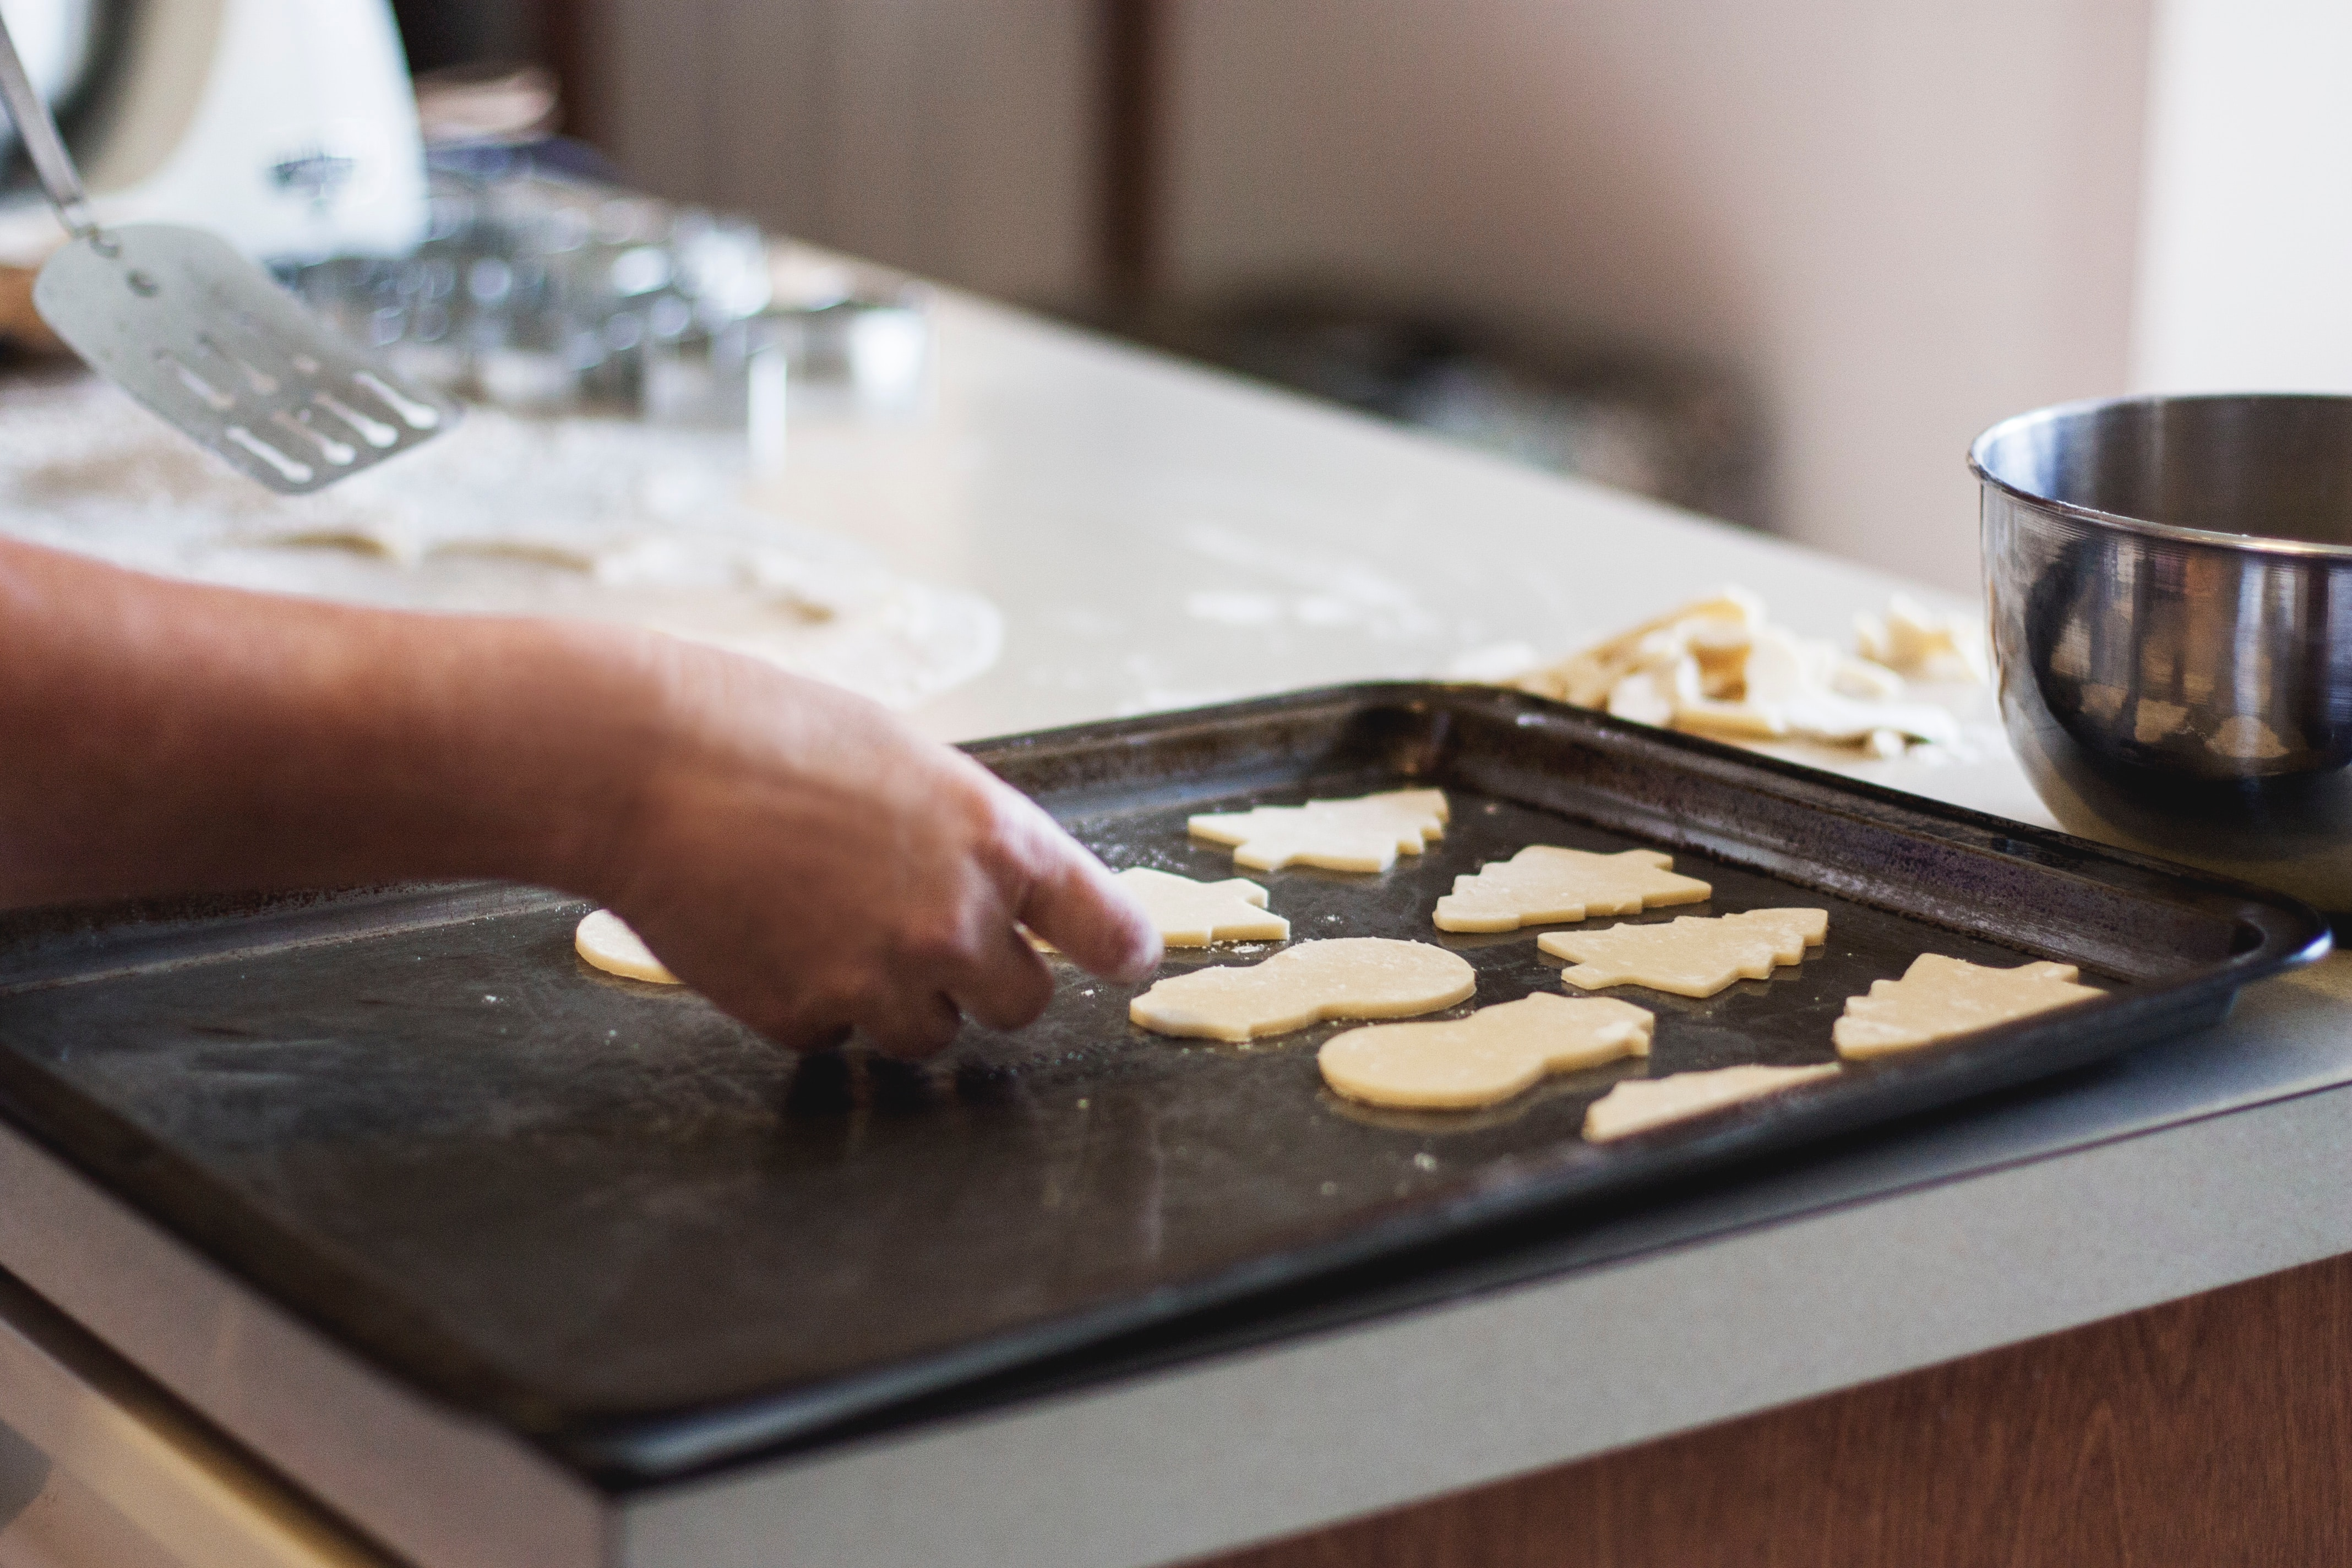 Baking Supplies For Cookies – Making, Baking & Shipping Essentials